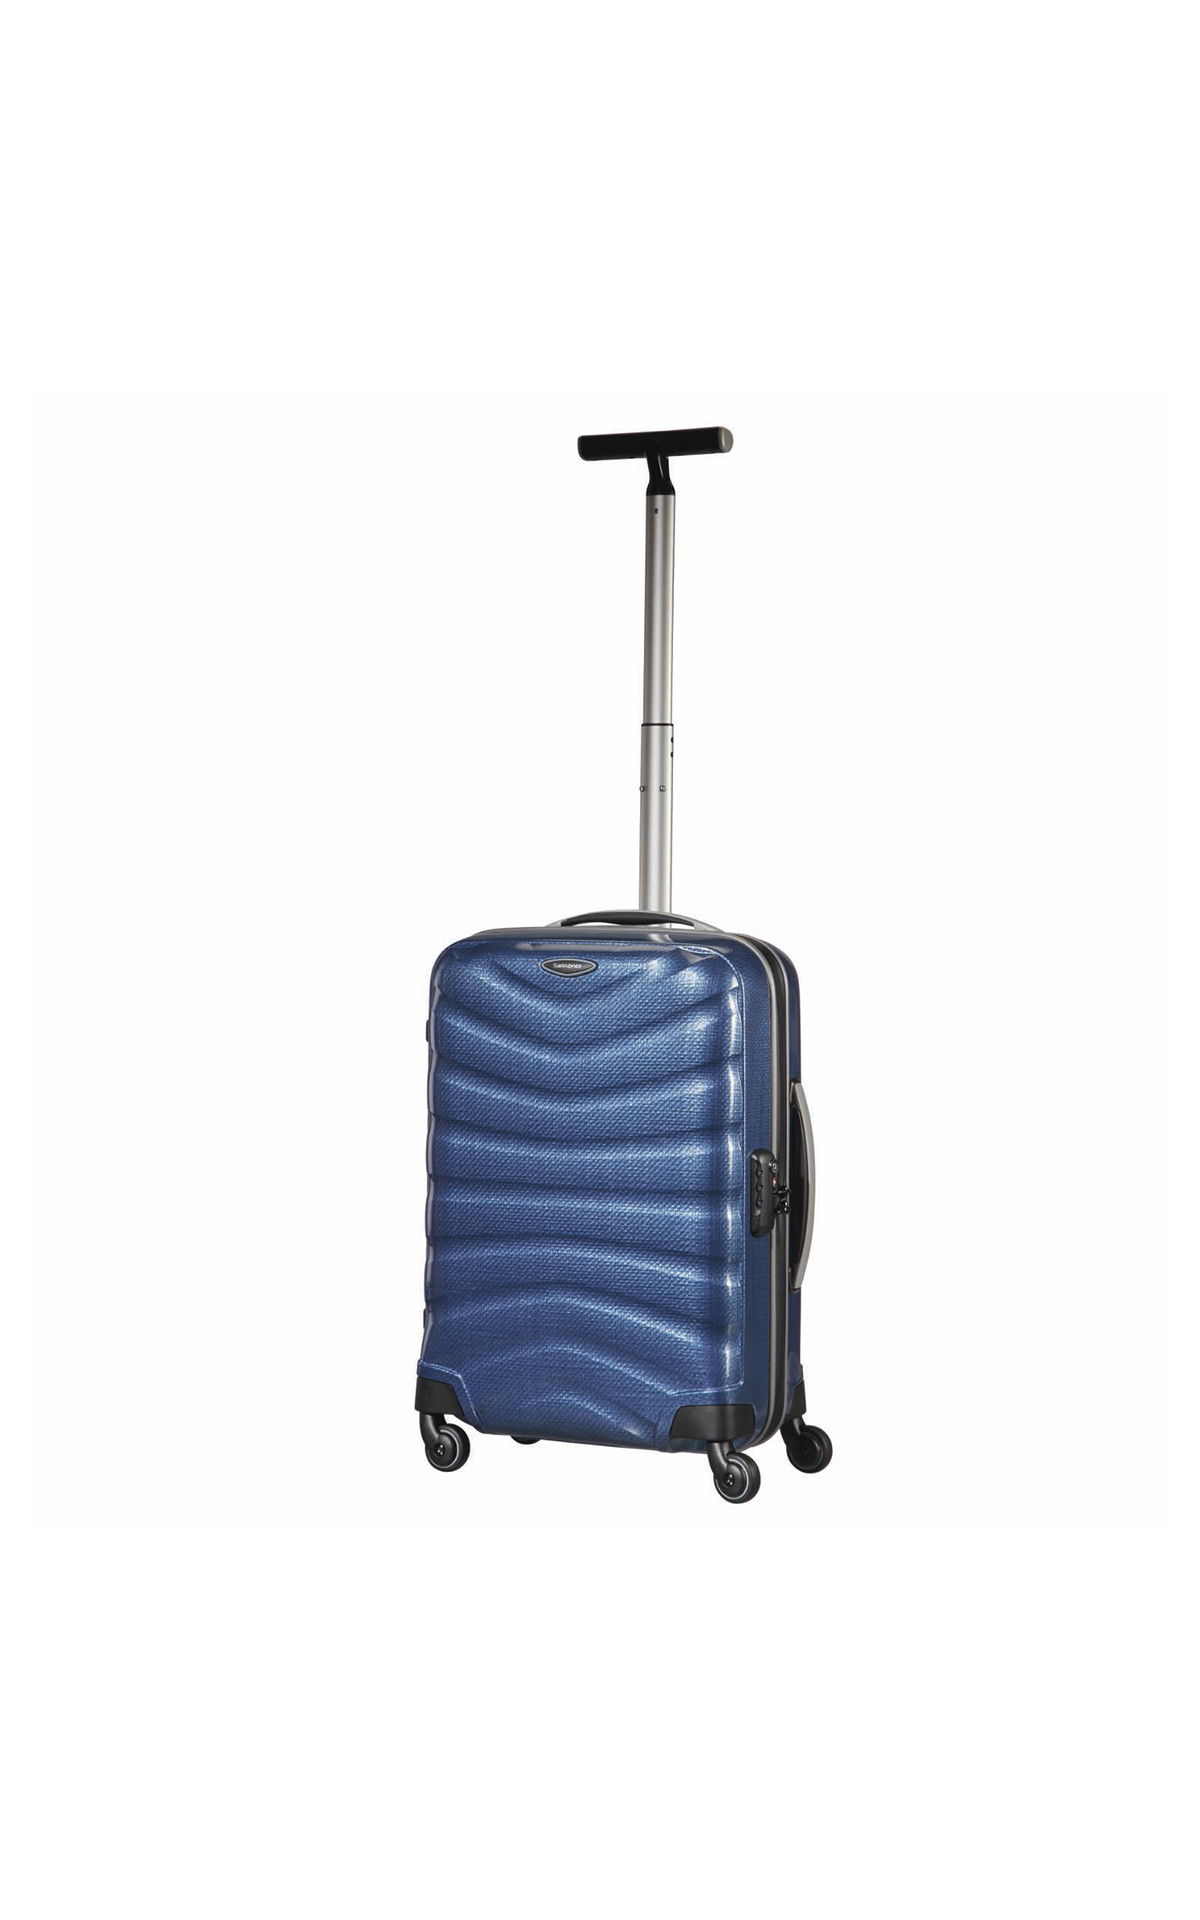 Blue Firelite suitcase Samsonite